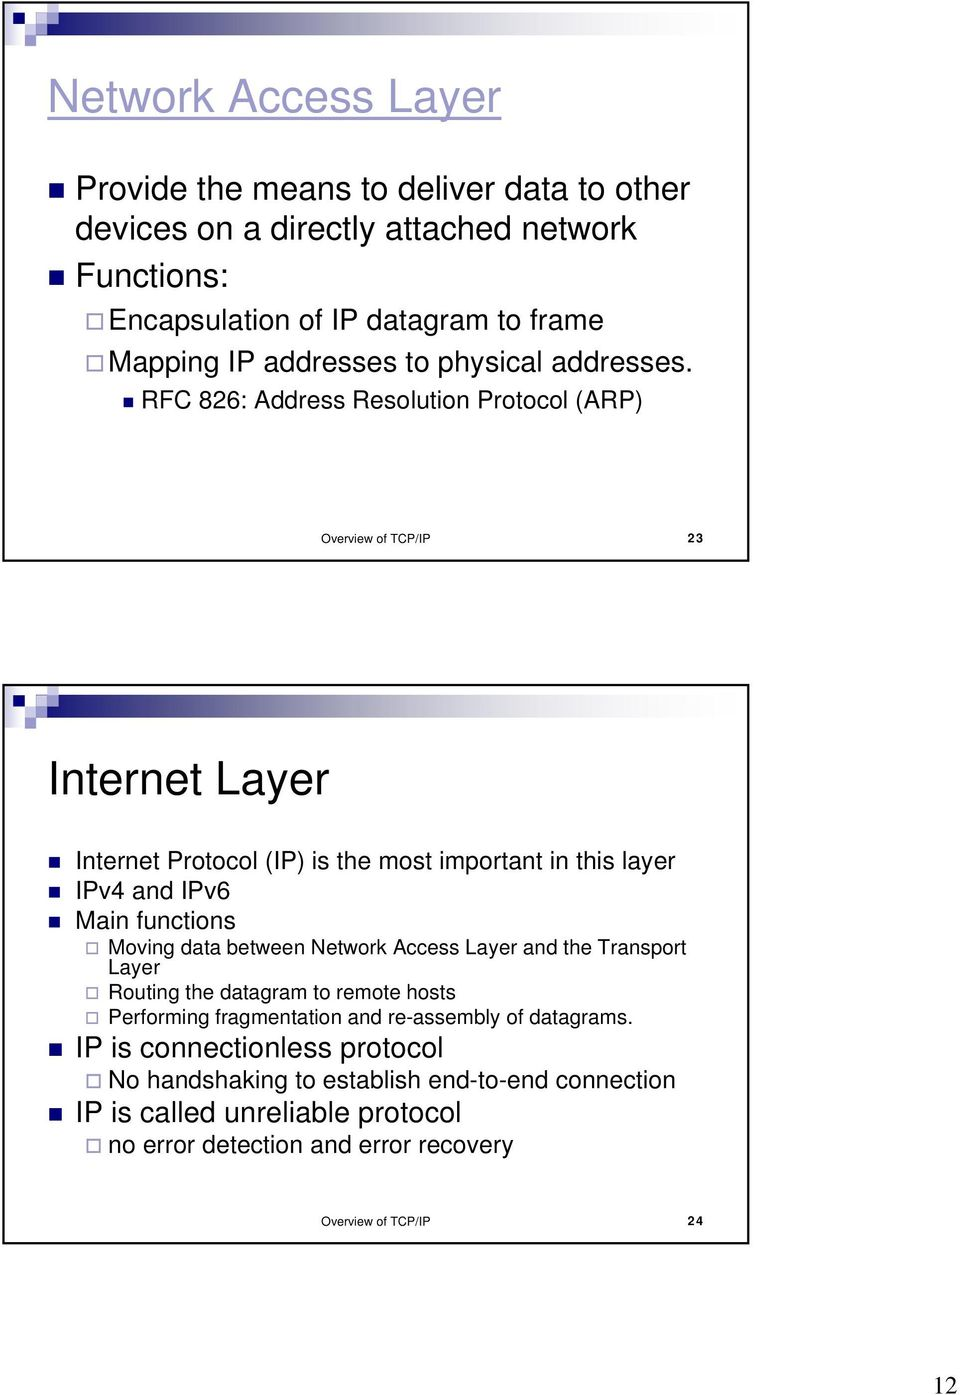 RFC 826: Address Resolution Protocol (ARP) Overview of TCP/IP 23 Internet Layer Internet Protocol (IP) is the most important in this layer IPv4 and IPv6 Main functions